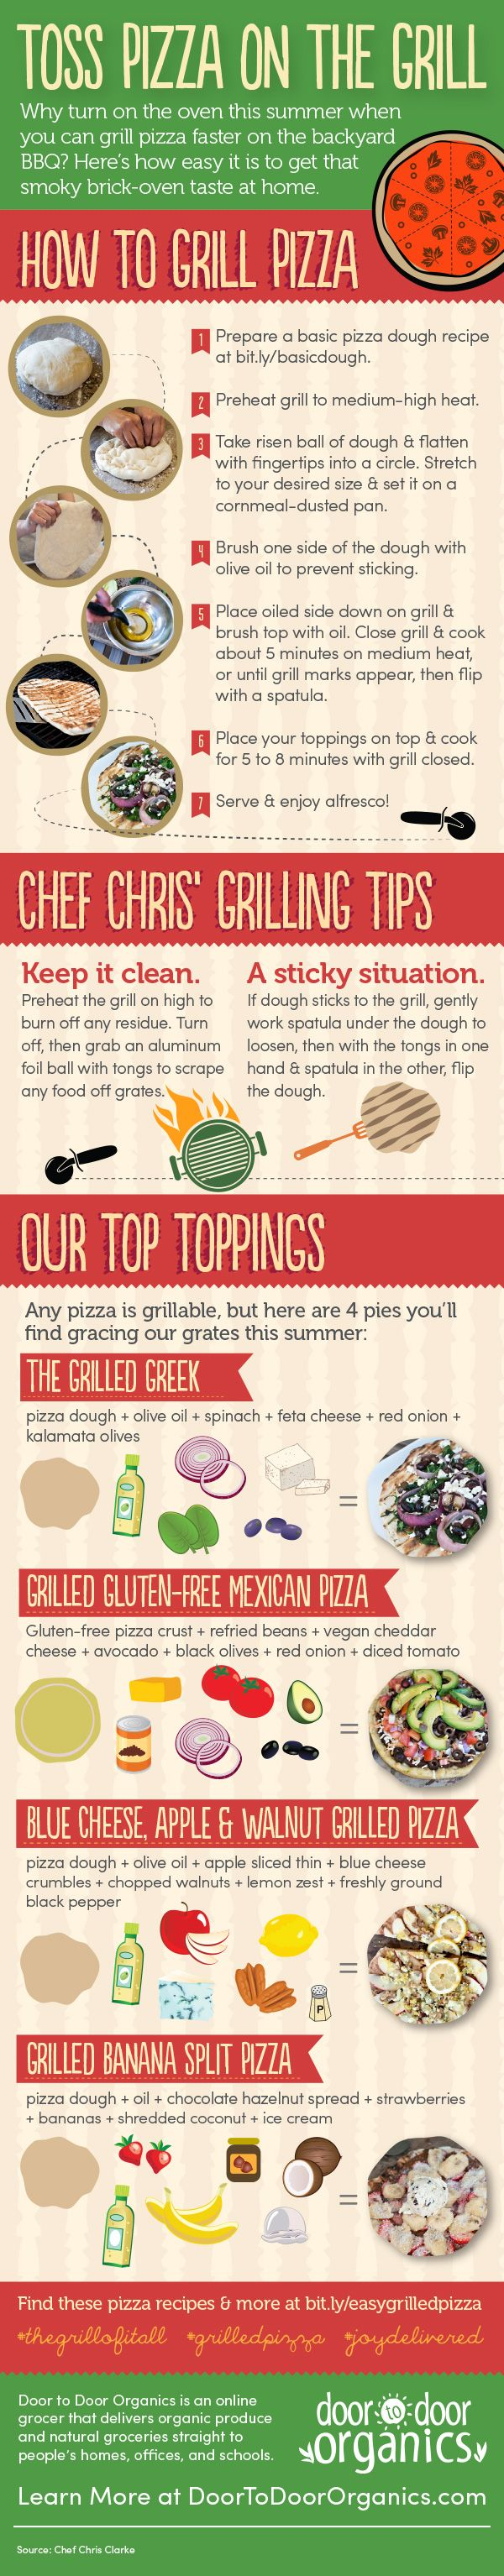 How to Grill Pizza | Infographic